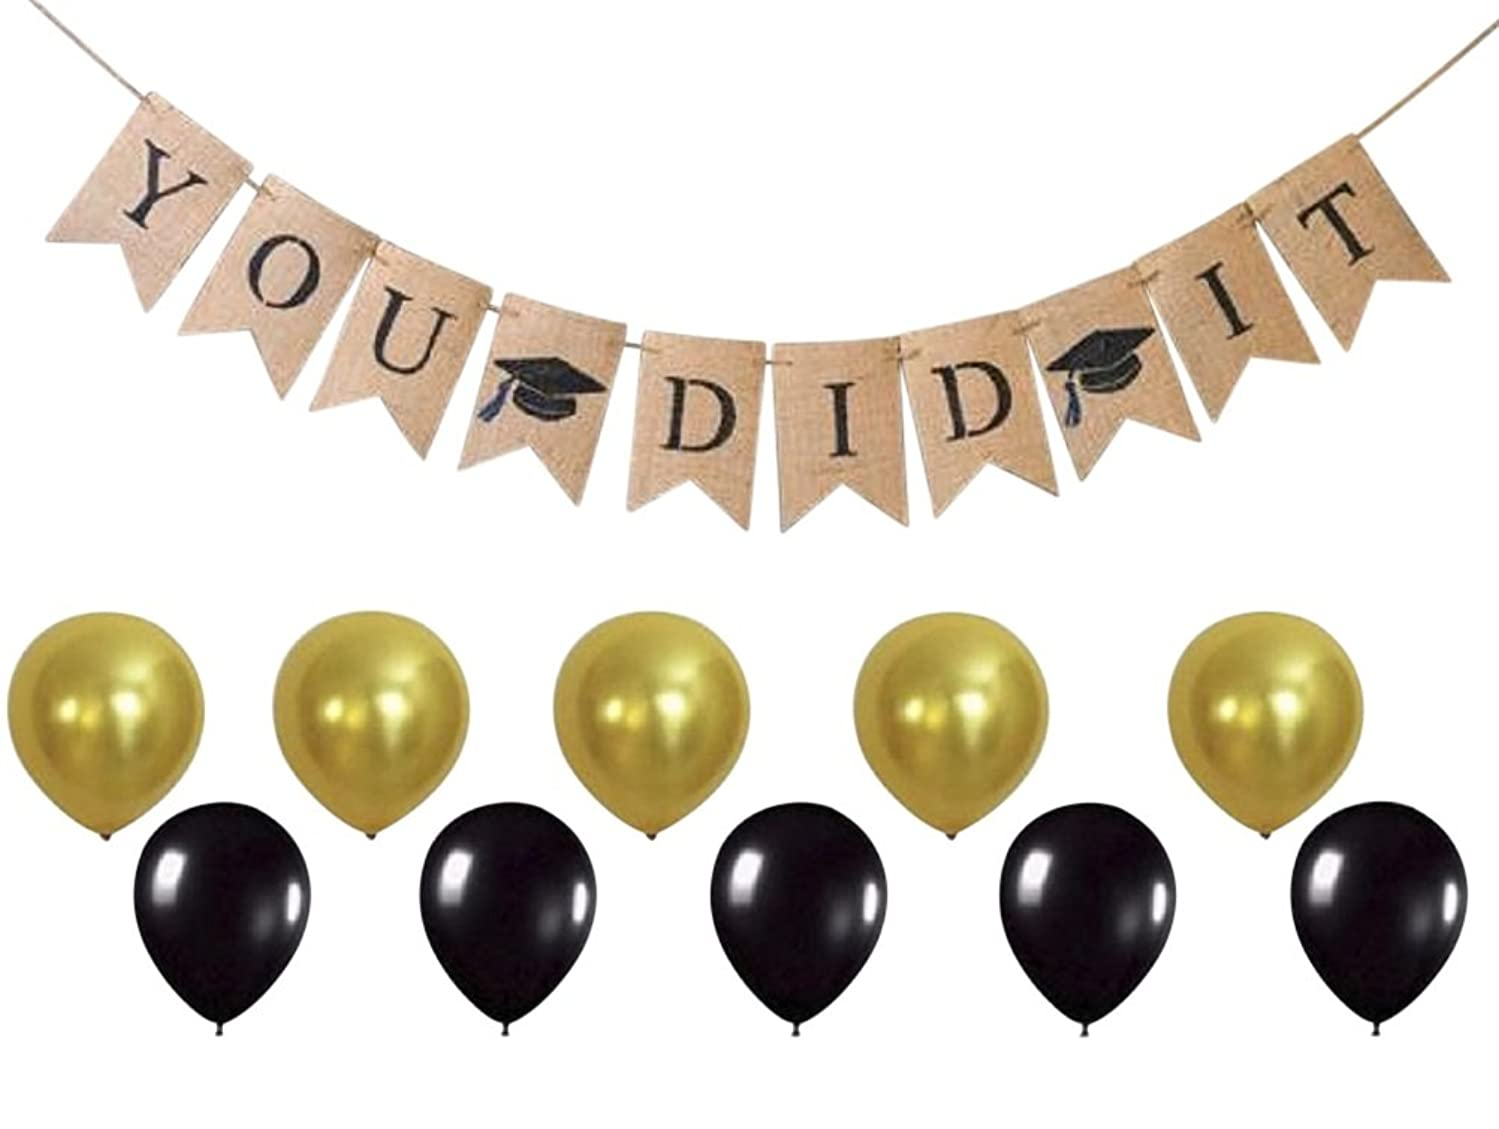 You DID IT Graduation Banner - Grad Party Supplies and Decorations - Celebrate with Gold & Black Balloons - Ready to Hang Burlap Banner - by Jolly Jon ?